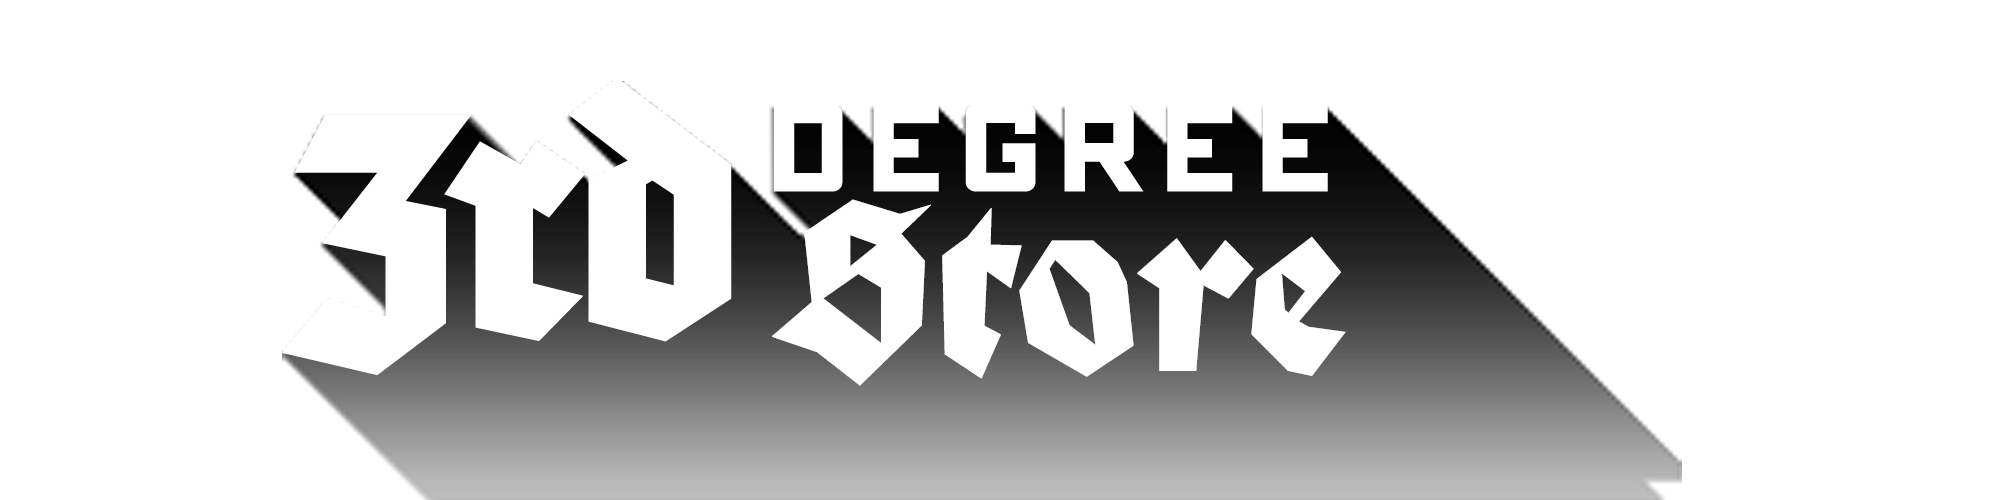 Third Degree Official  DVD, sex toy and Streaming Porn Video on Demand